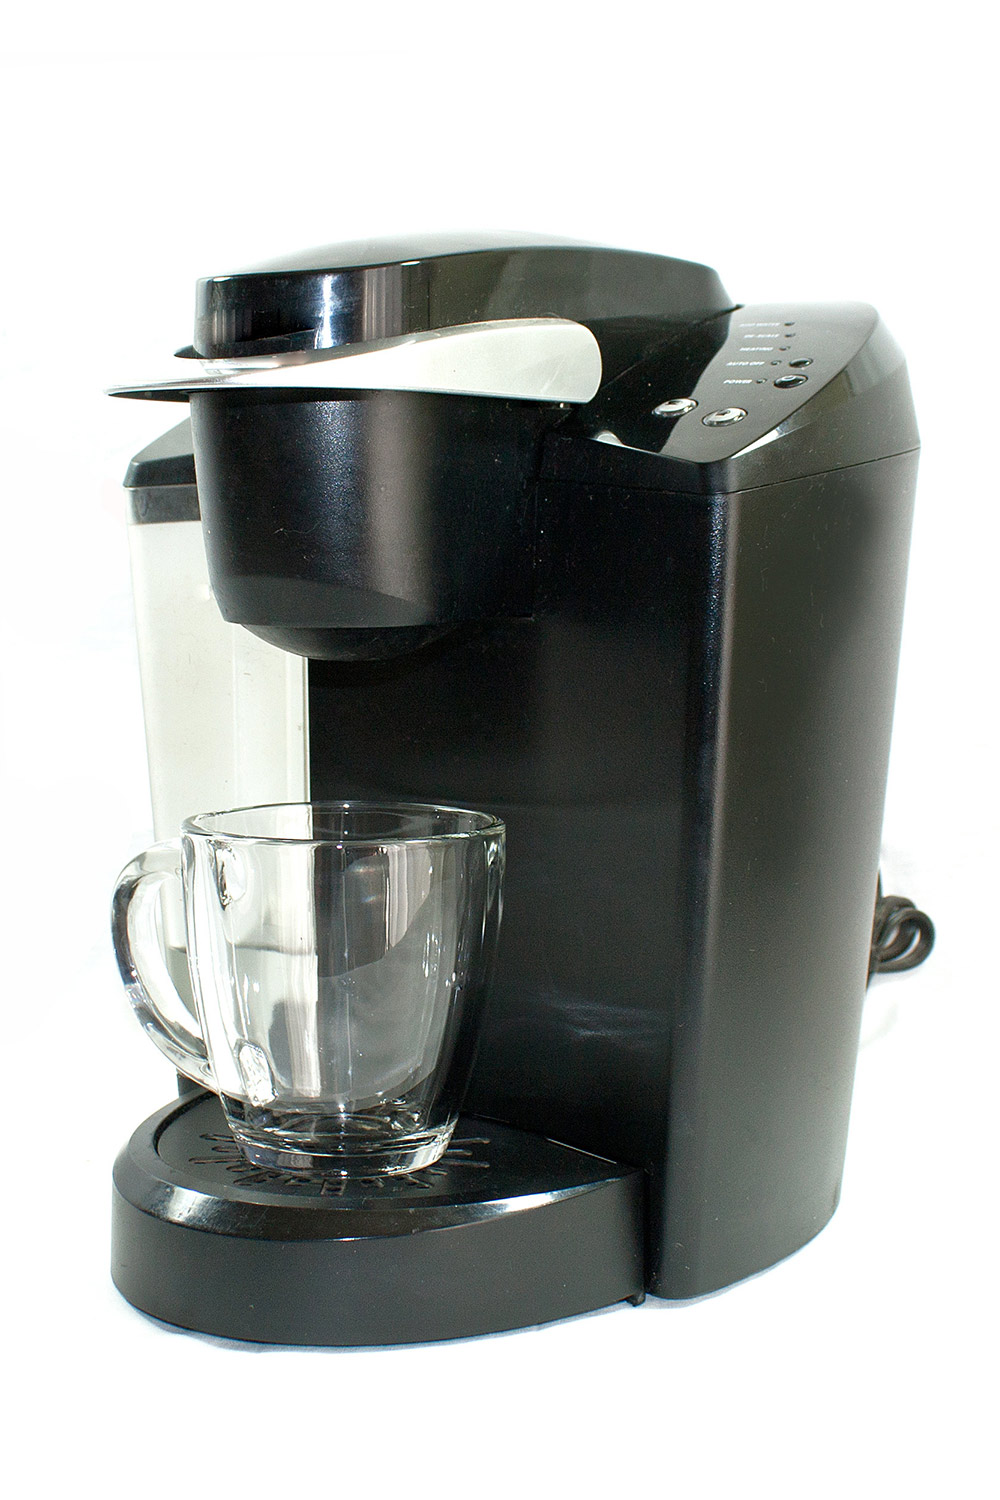 To clean the coffeemaker, run full-strength white vinegar through a normal brew cycle, run again, stop halfway through and let sit 15 minutes, then run several cycles with plain water.